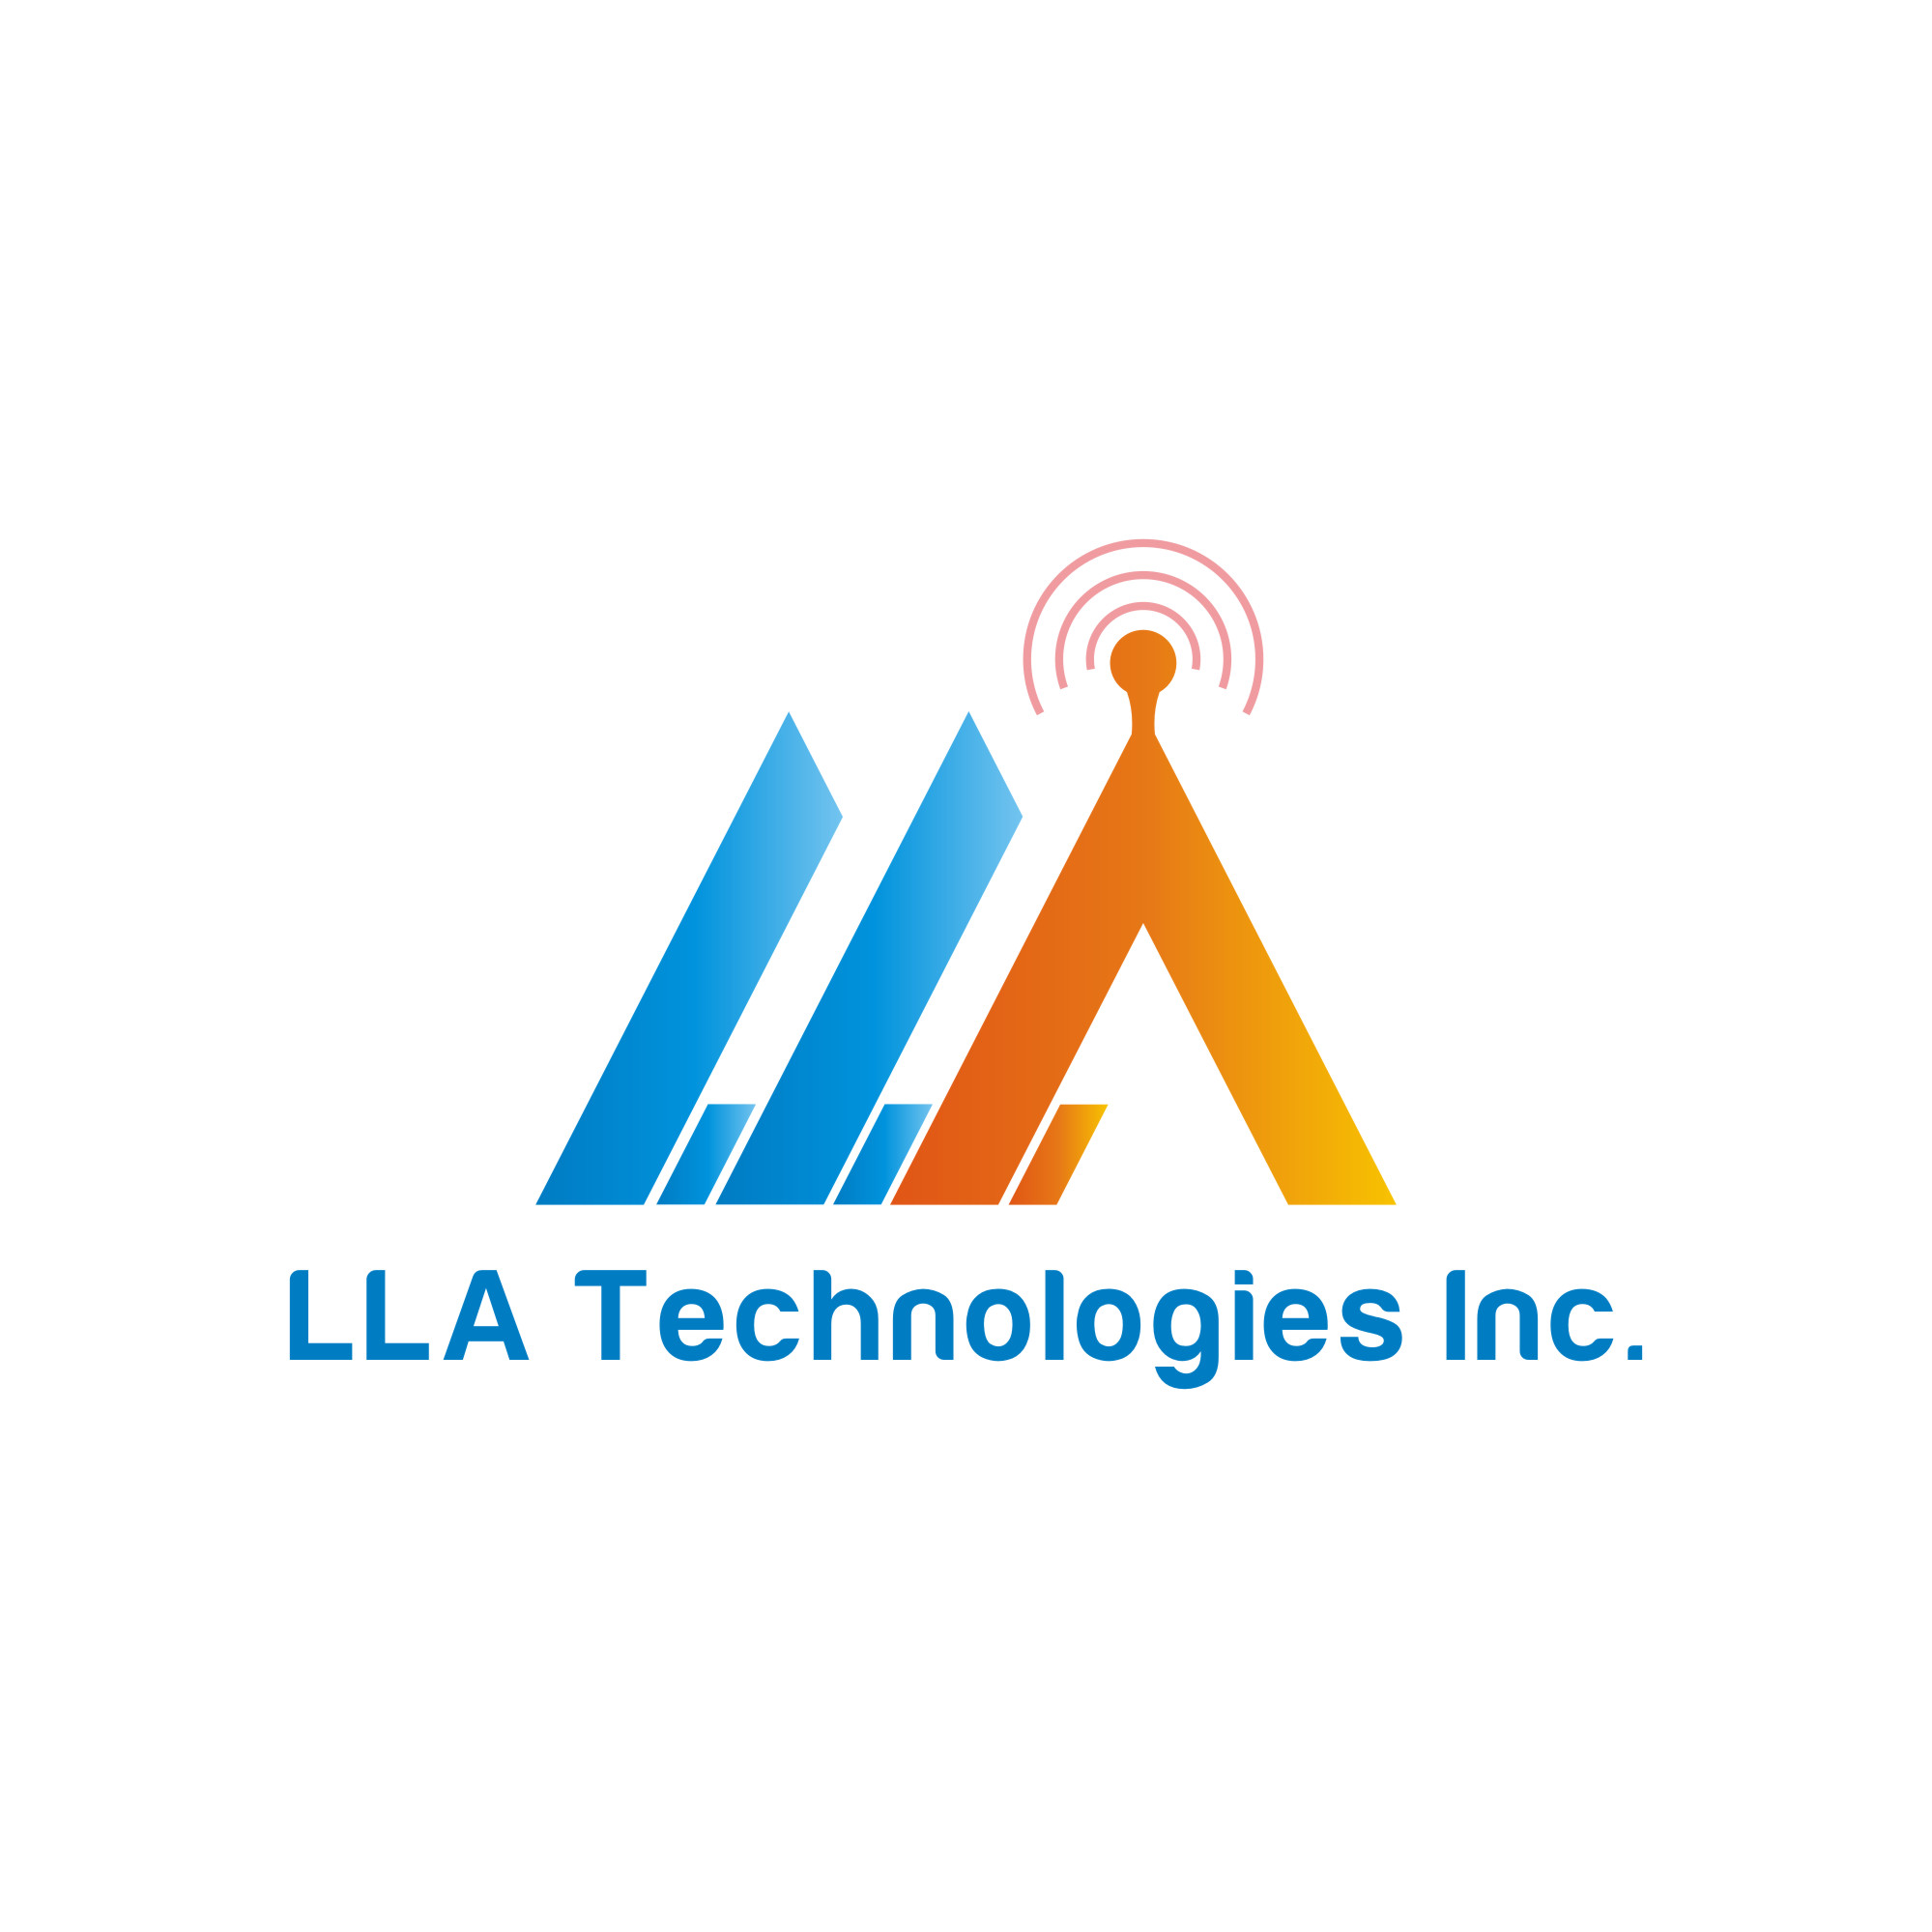 Logo Design by Orphan Suhendru - Entry No. 122 in the Logo Design Contest Inspiring Logo Design for LLA Technologies Inc..